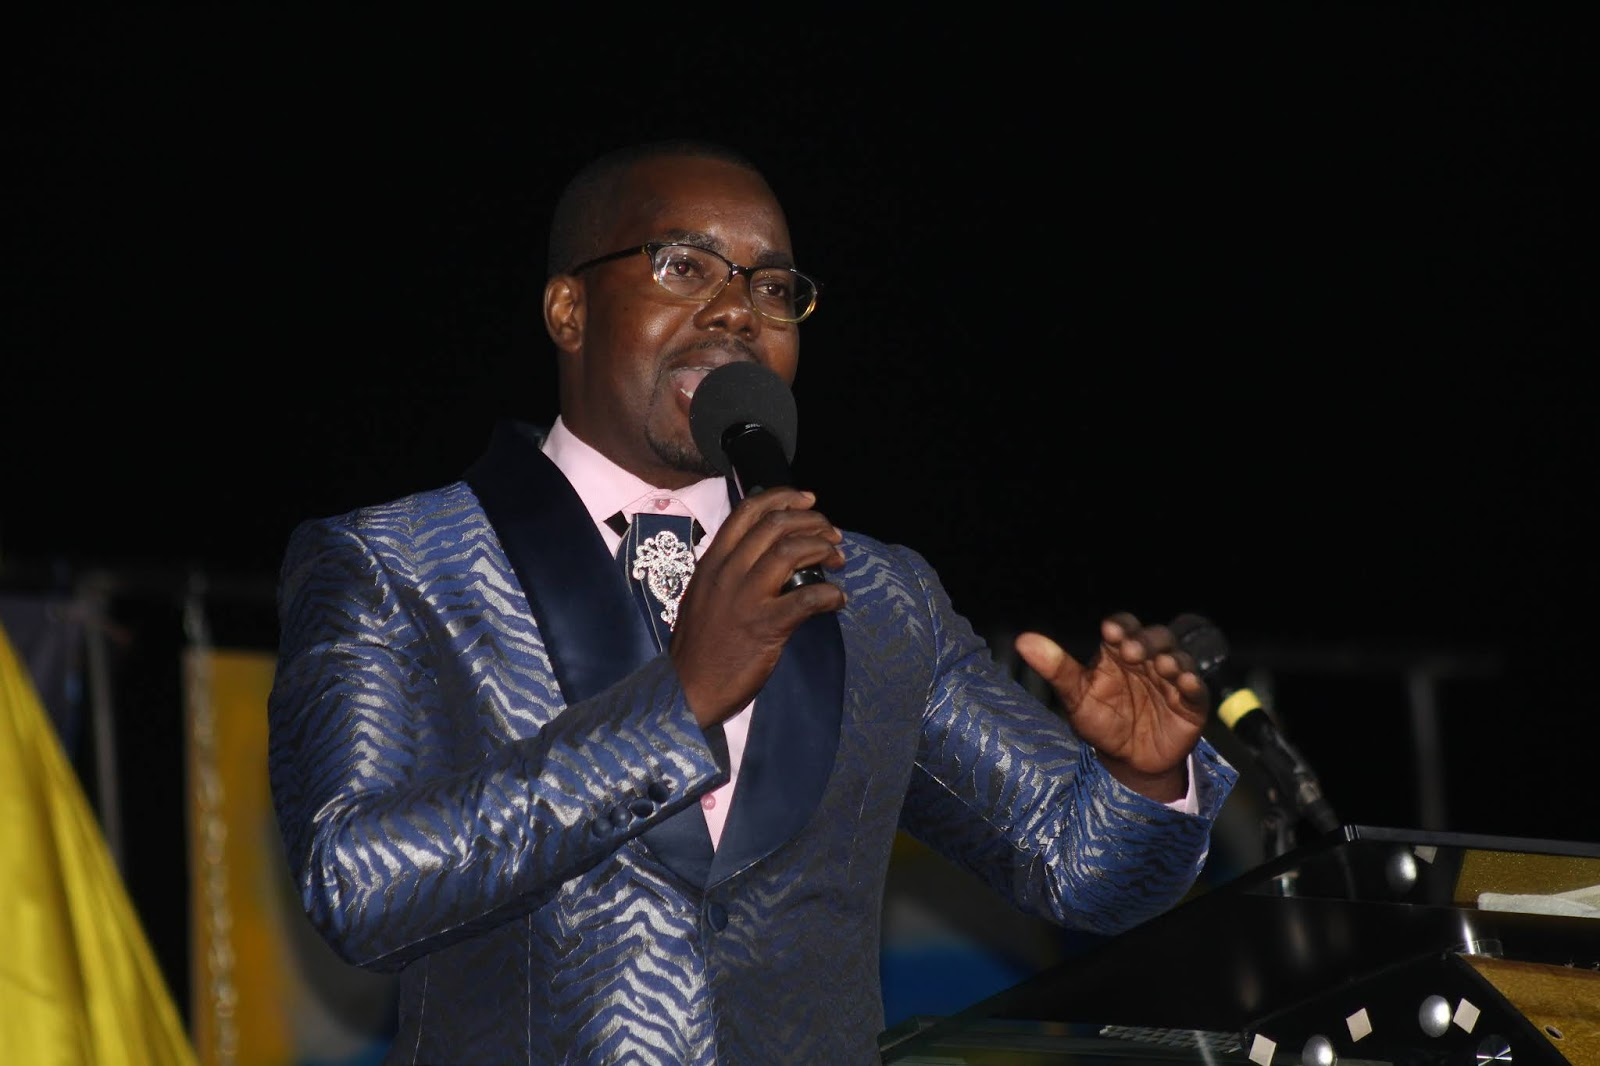 Apostle Shiloh Masenyama Preaches At Tiyambuke Wednesday Night 2018